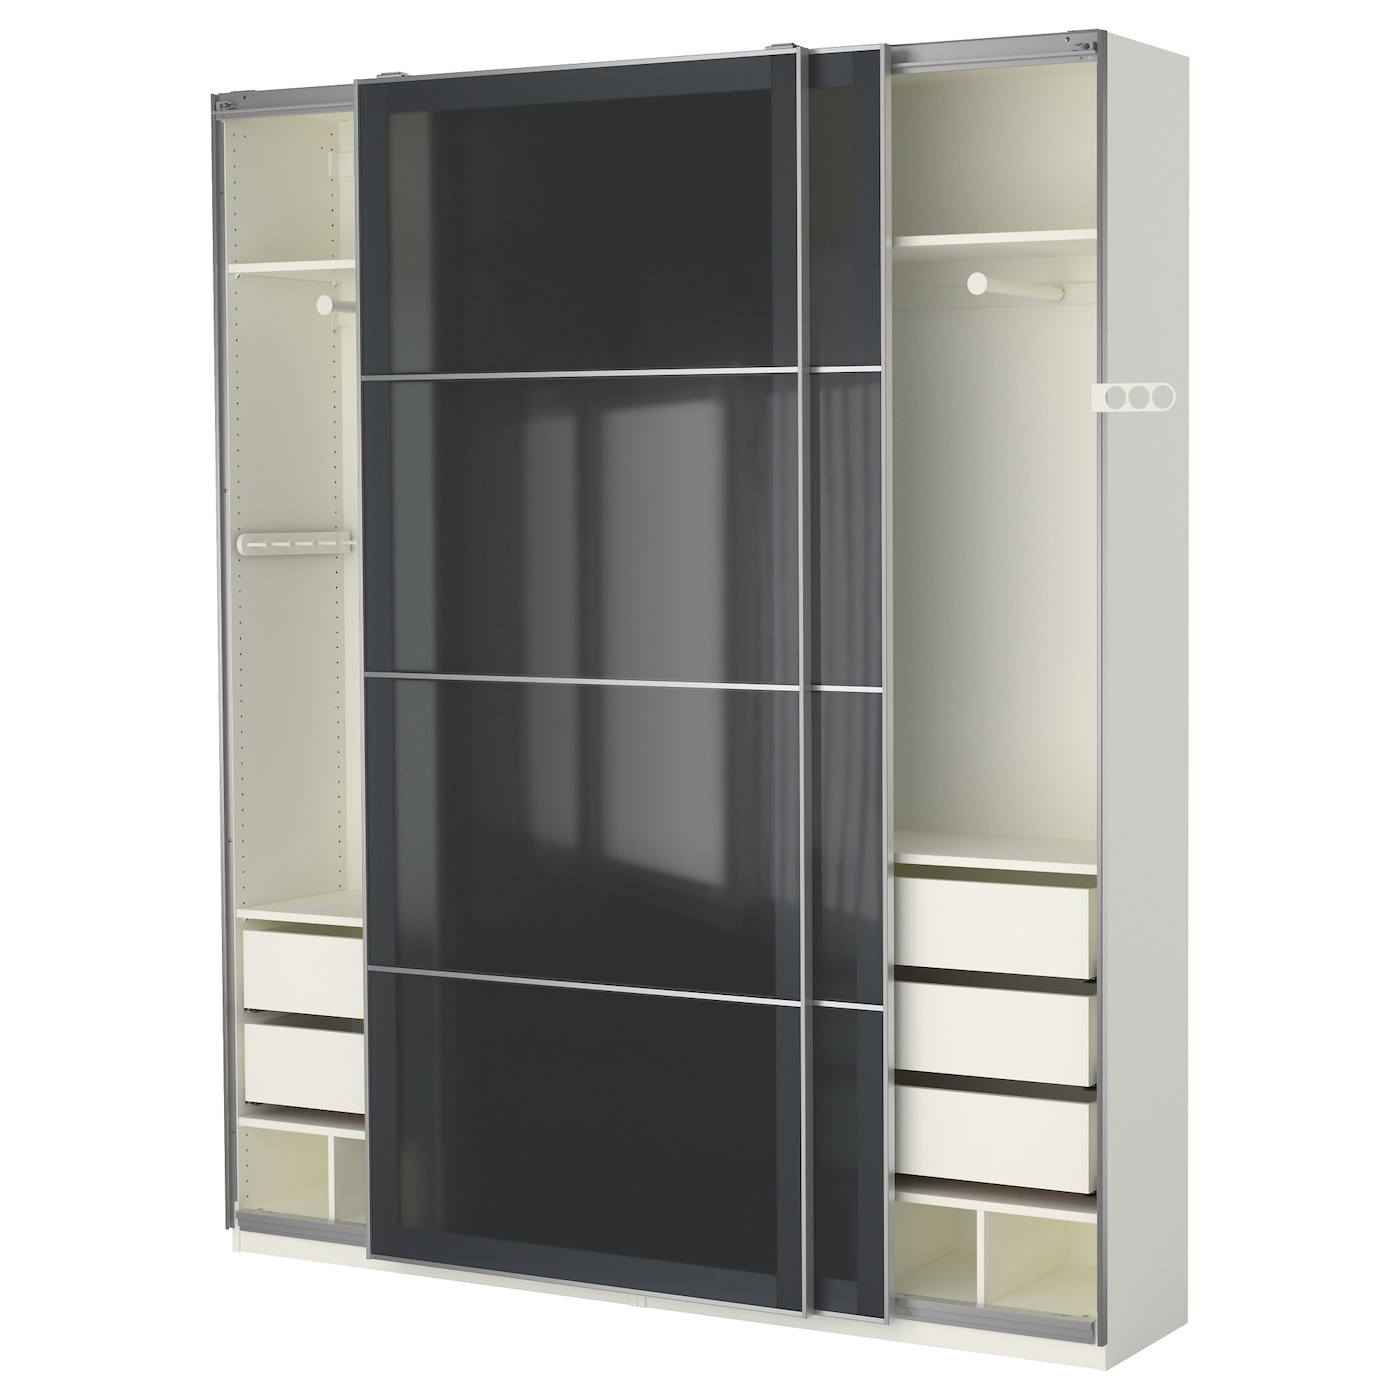 pax wardrobe white uggdal grey glass 200 x 44 x 236 cm ikea. Black Bedroom Furniture Sets. Home Design Ideas